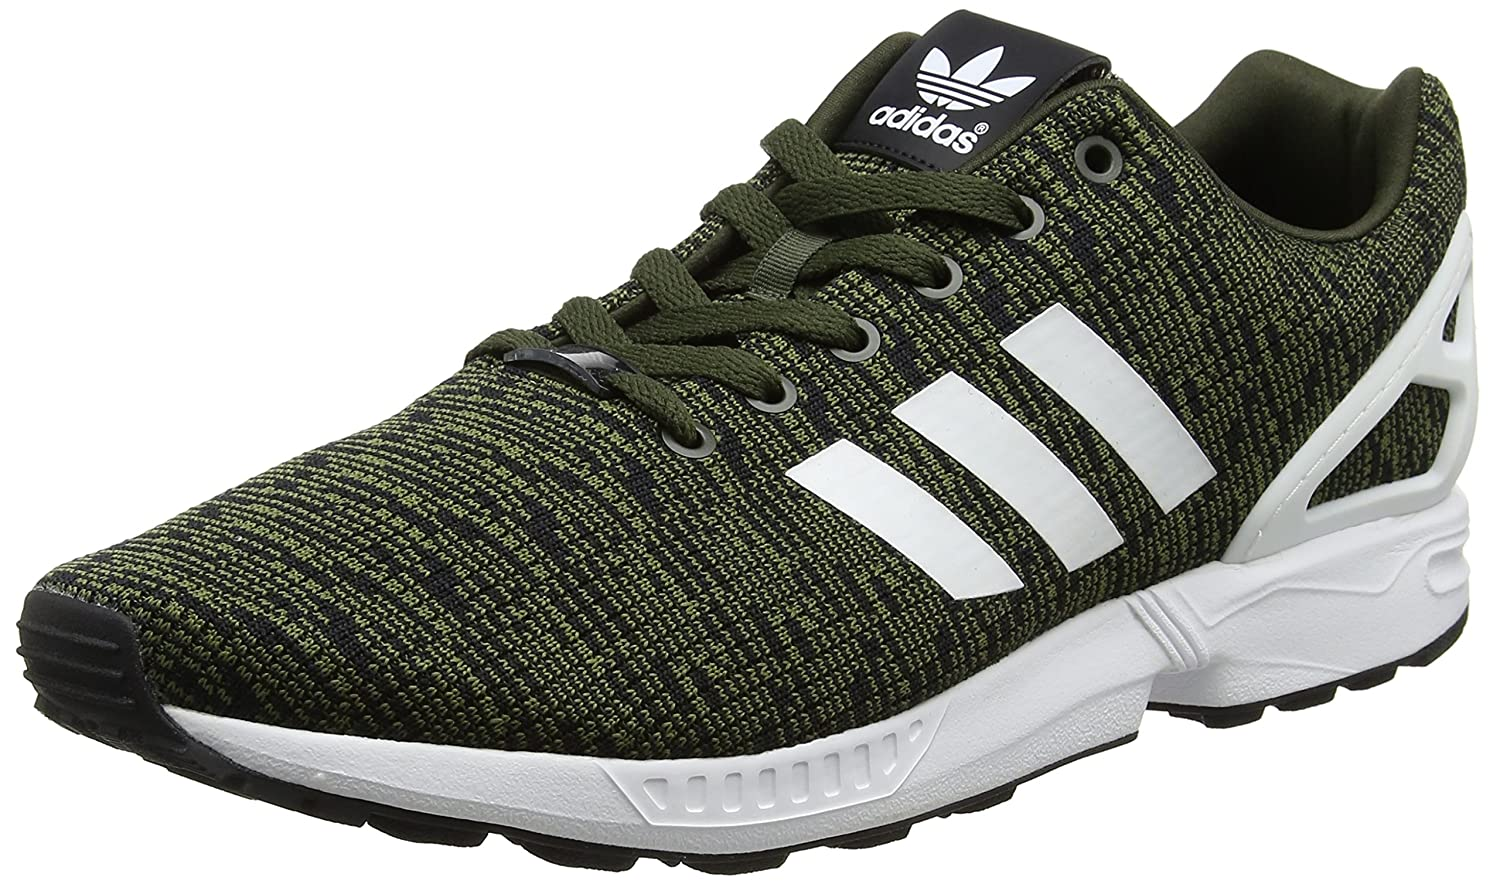 adidas Herren ZX Flux Laufschuhe  38 2/3 EU|Gr眉n (Night Cargo/Footwear White/Core Black)